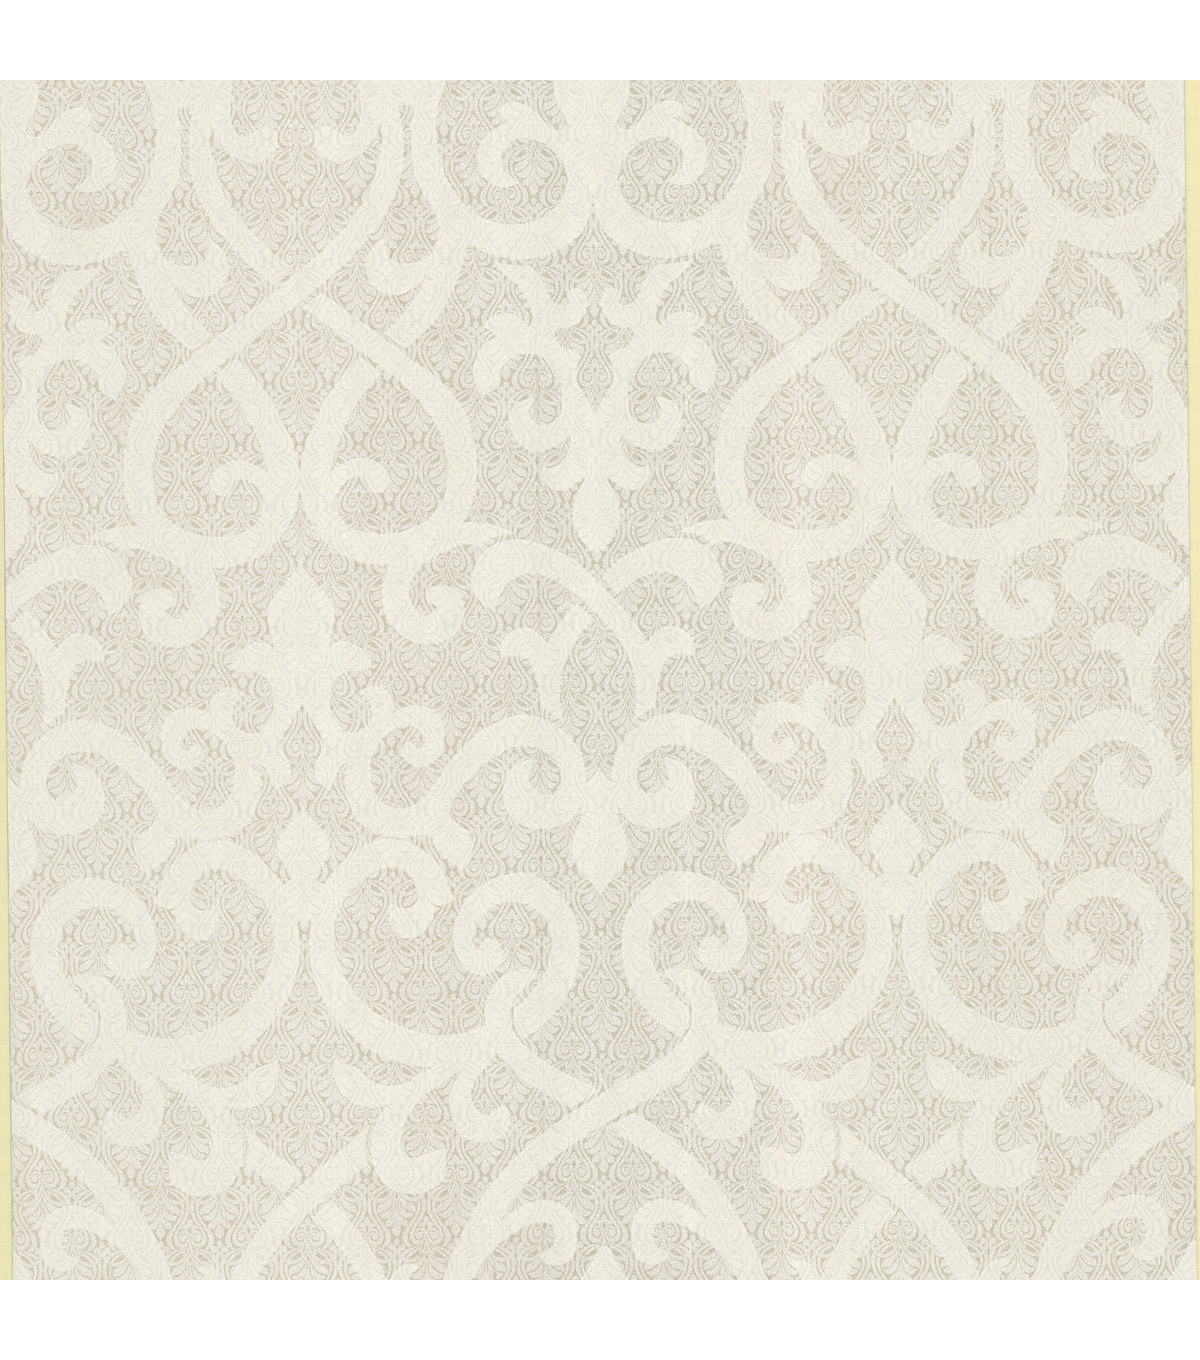 Giselle Champagne Ironwork Damask  Wallpaper Sample